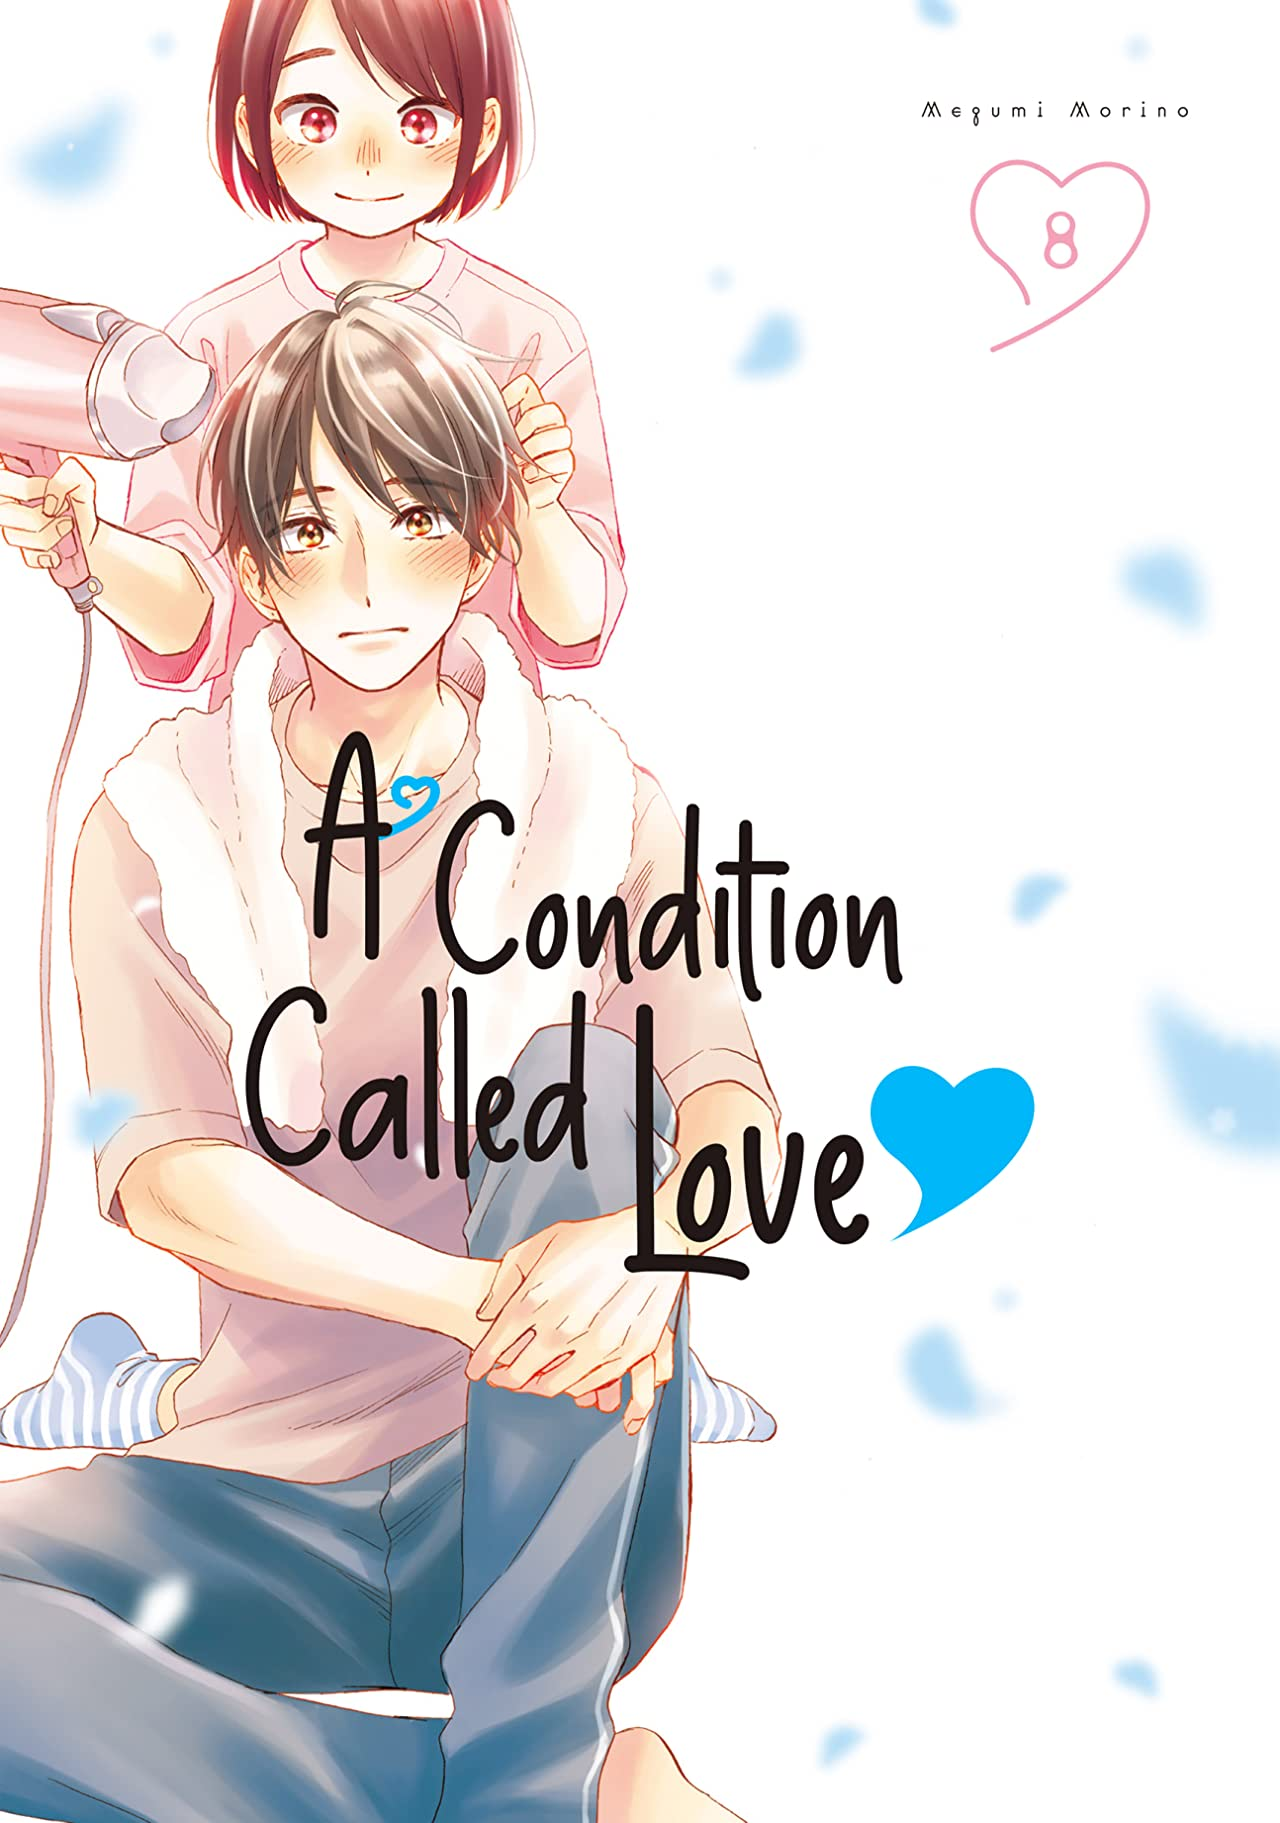 A Condition Called Love Vol. 8